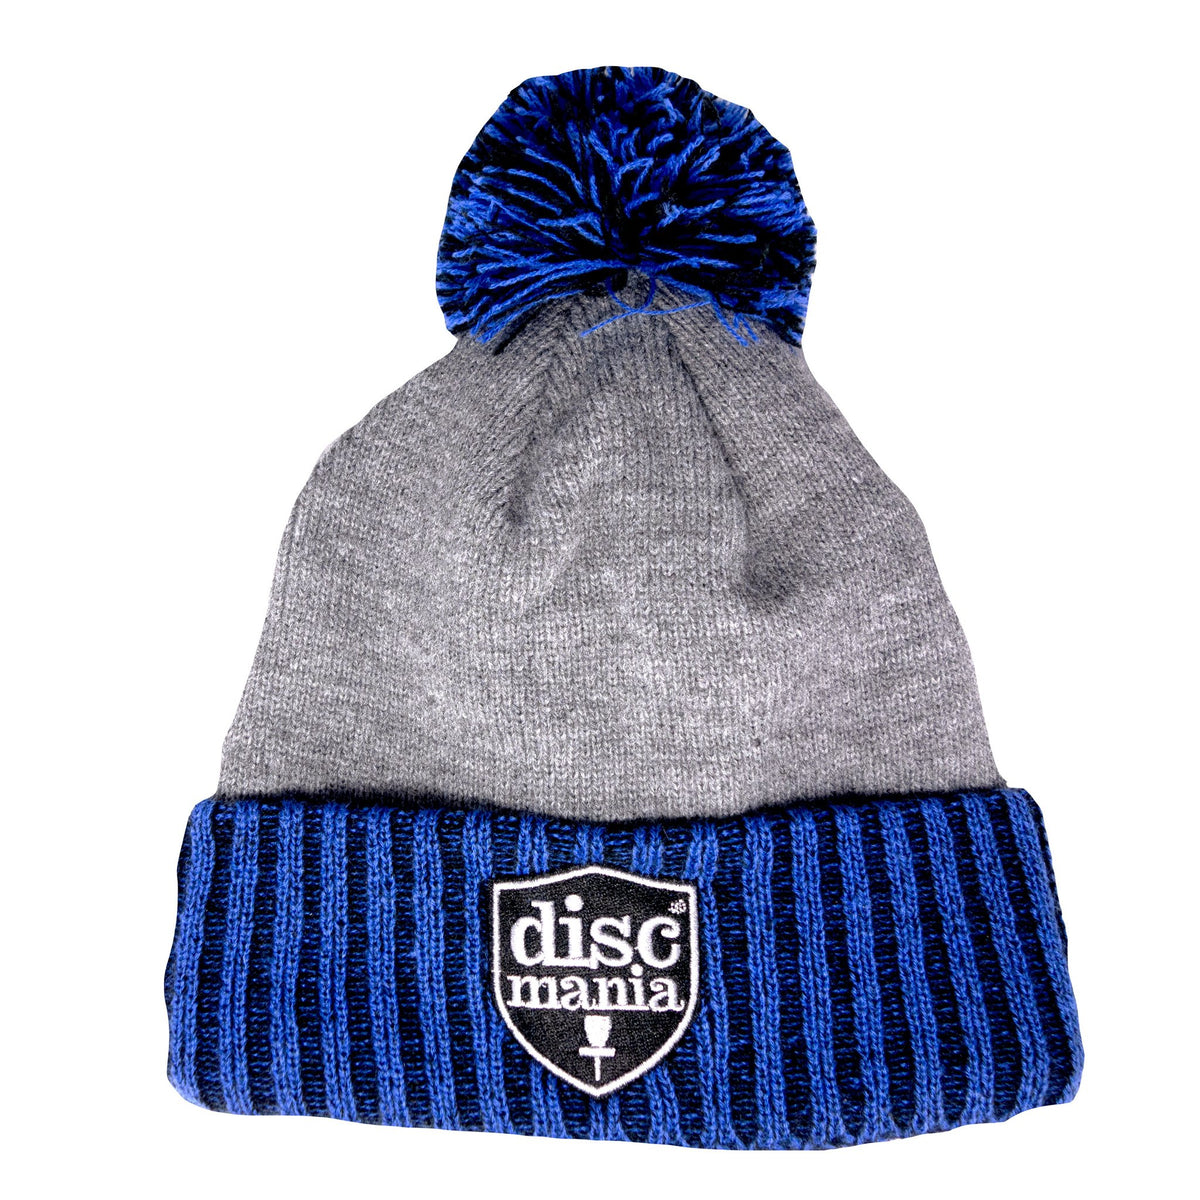 Discmania Colorblock Cuffed Beanie